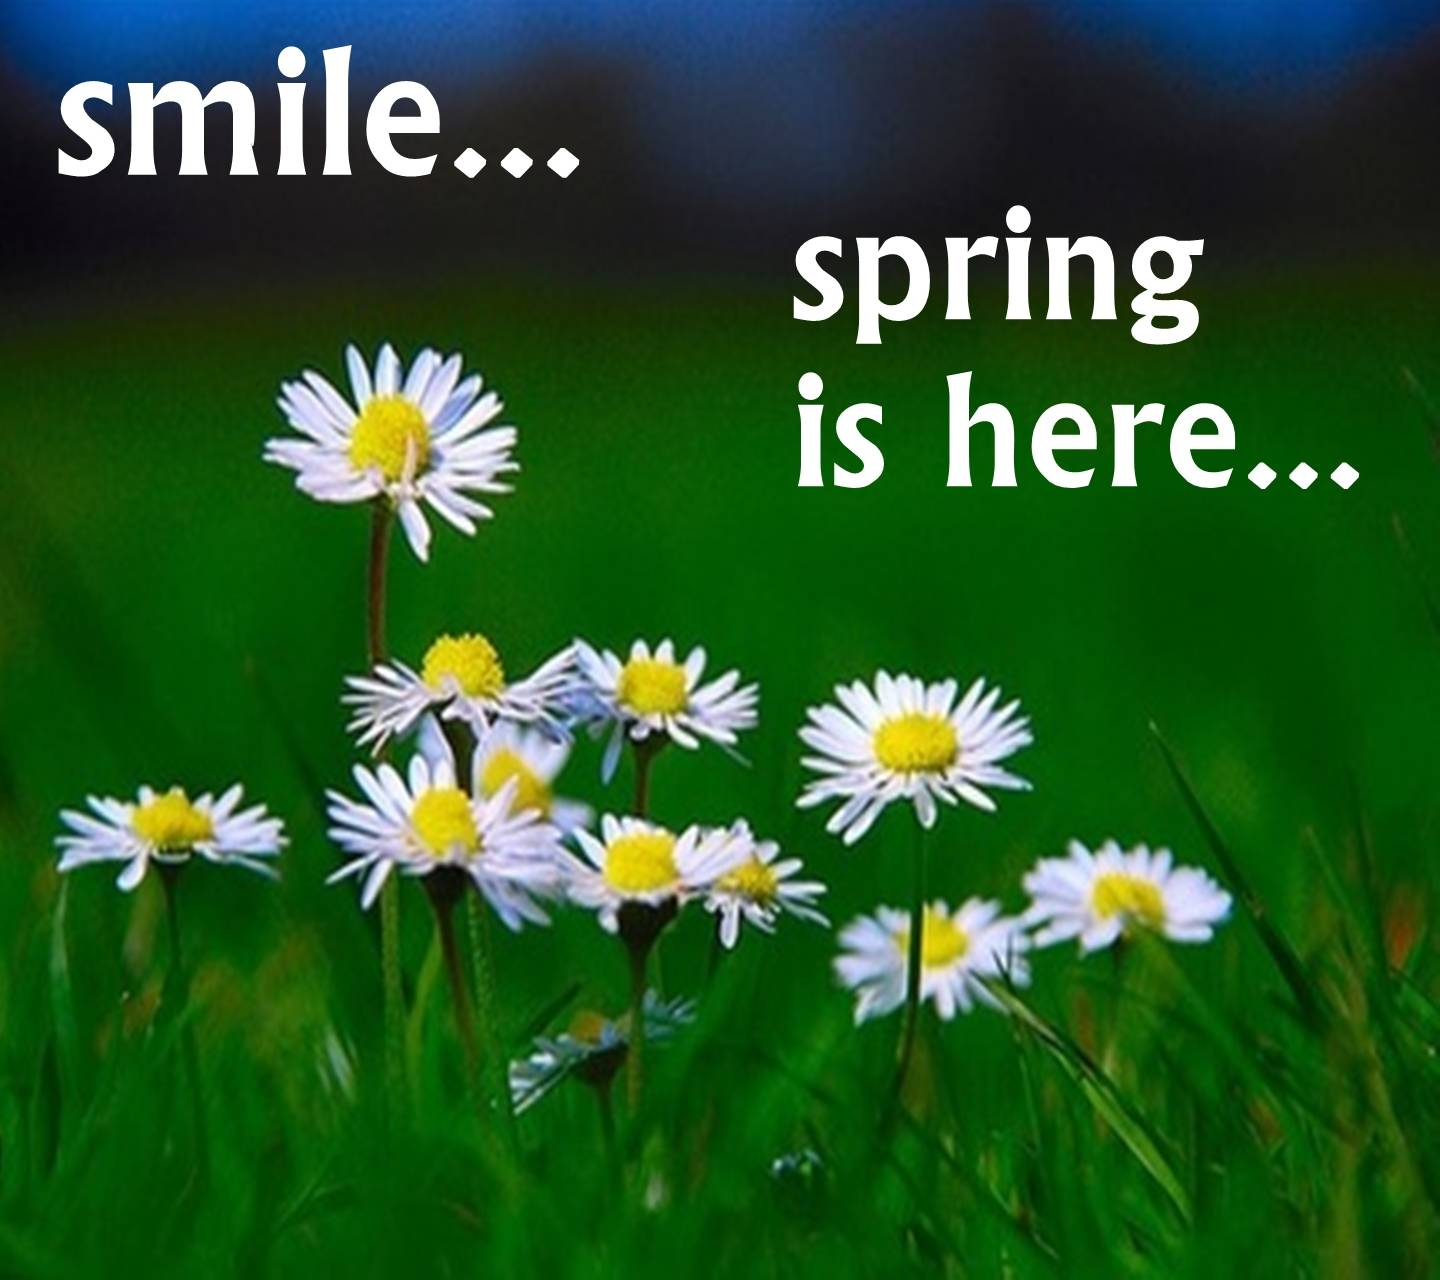 Smile Sping Here